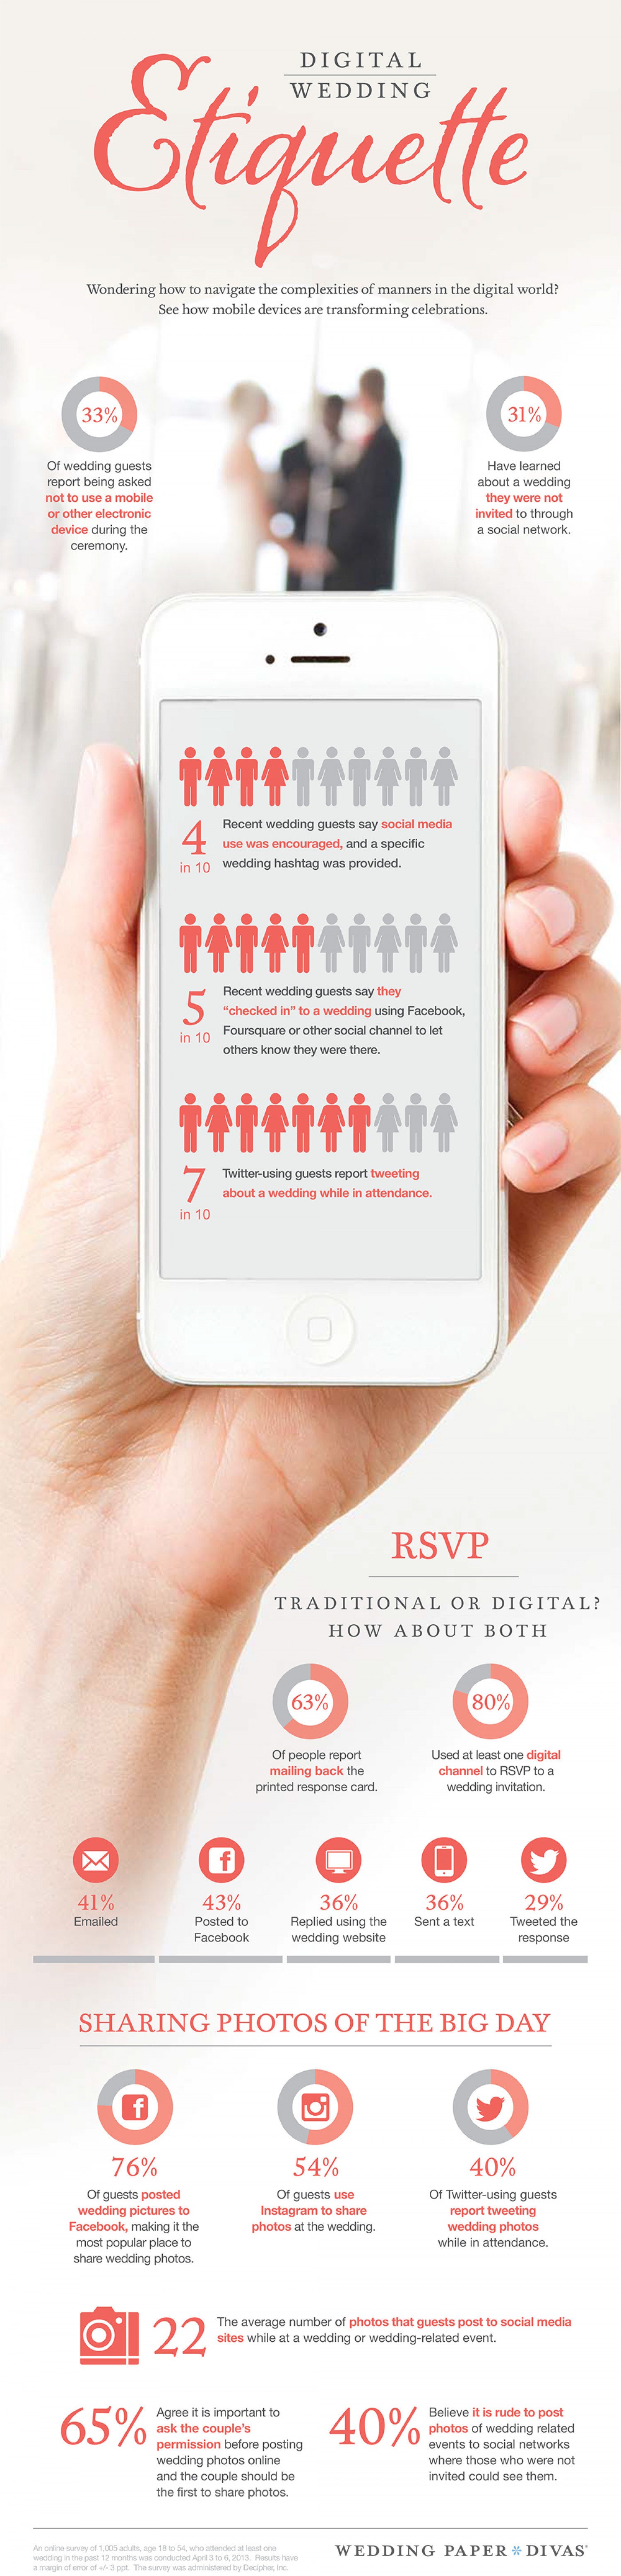 Digital Wedding Etiquette Infographic